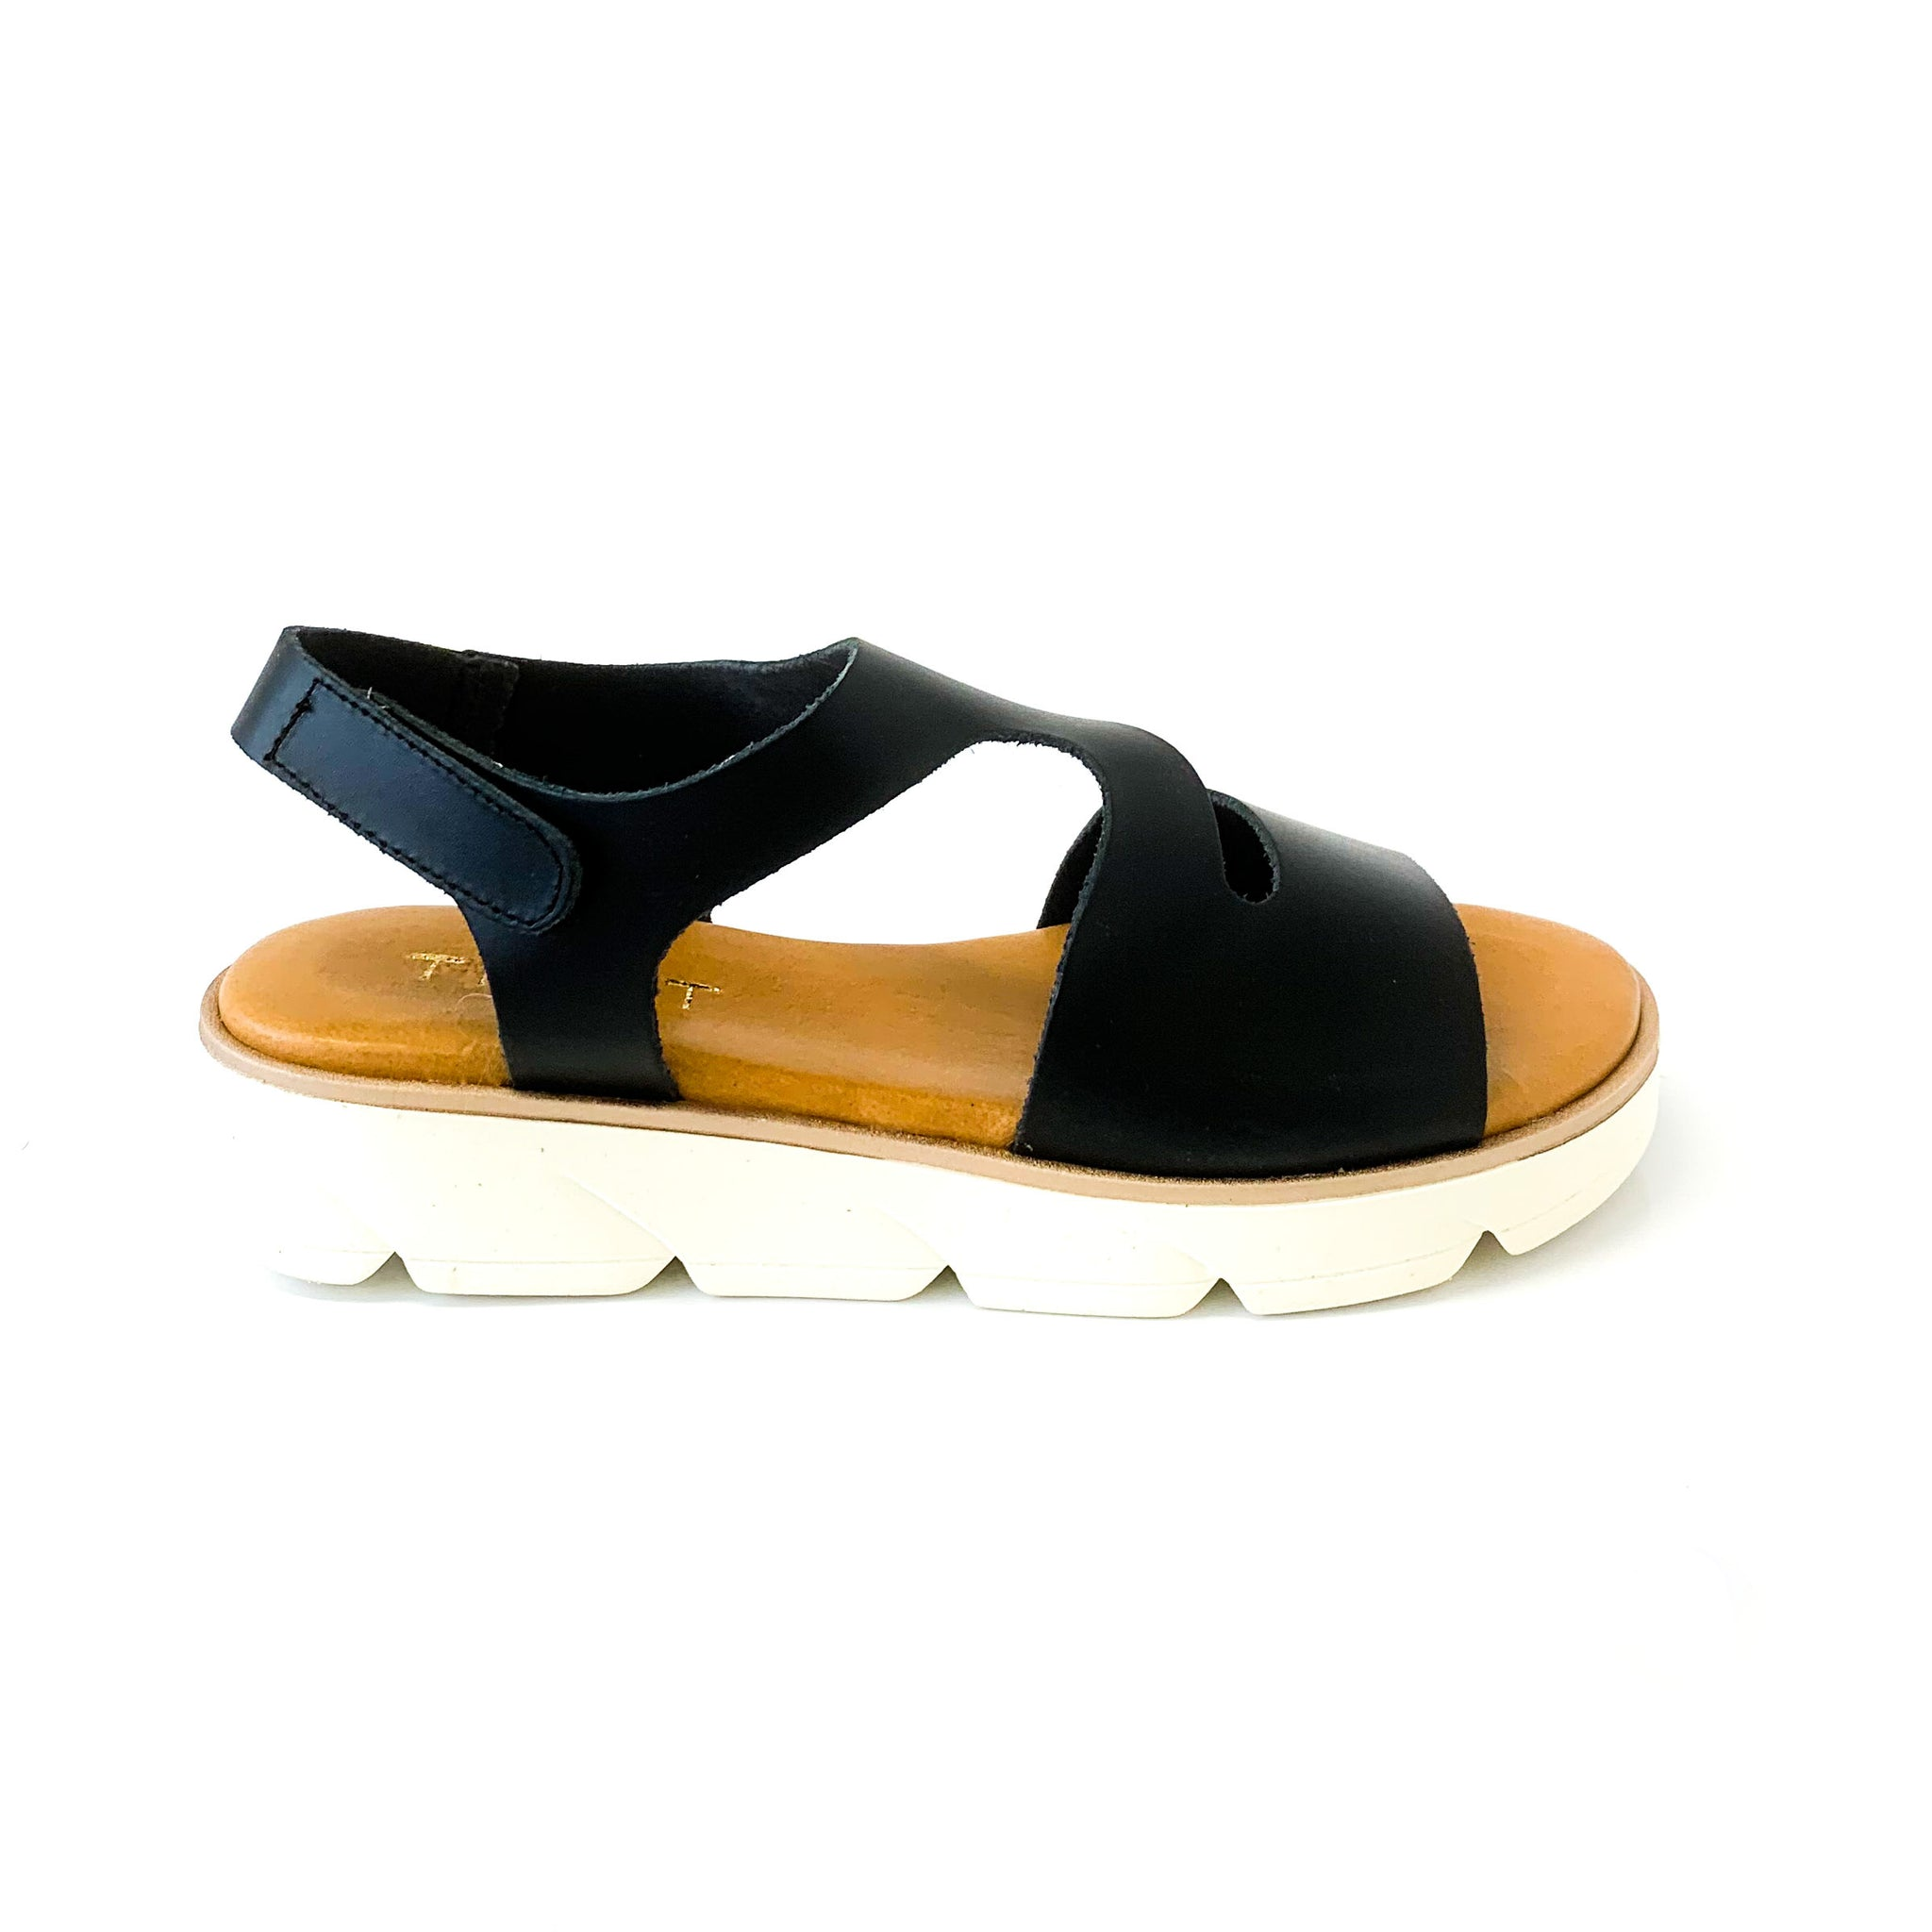 ELLA | Platform Sandals with Black Straps - TrystShoes